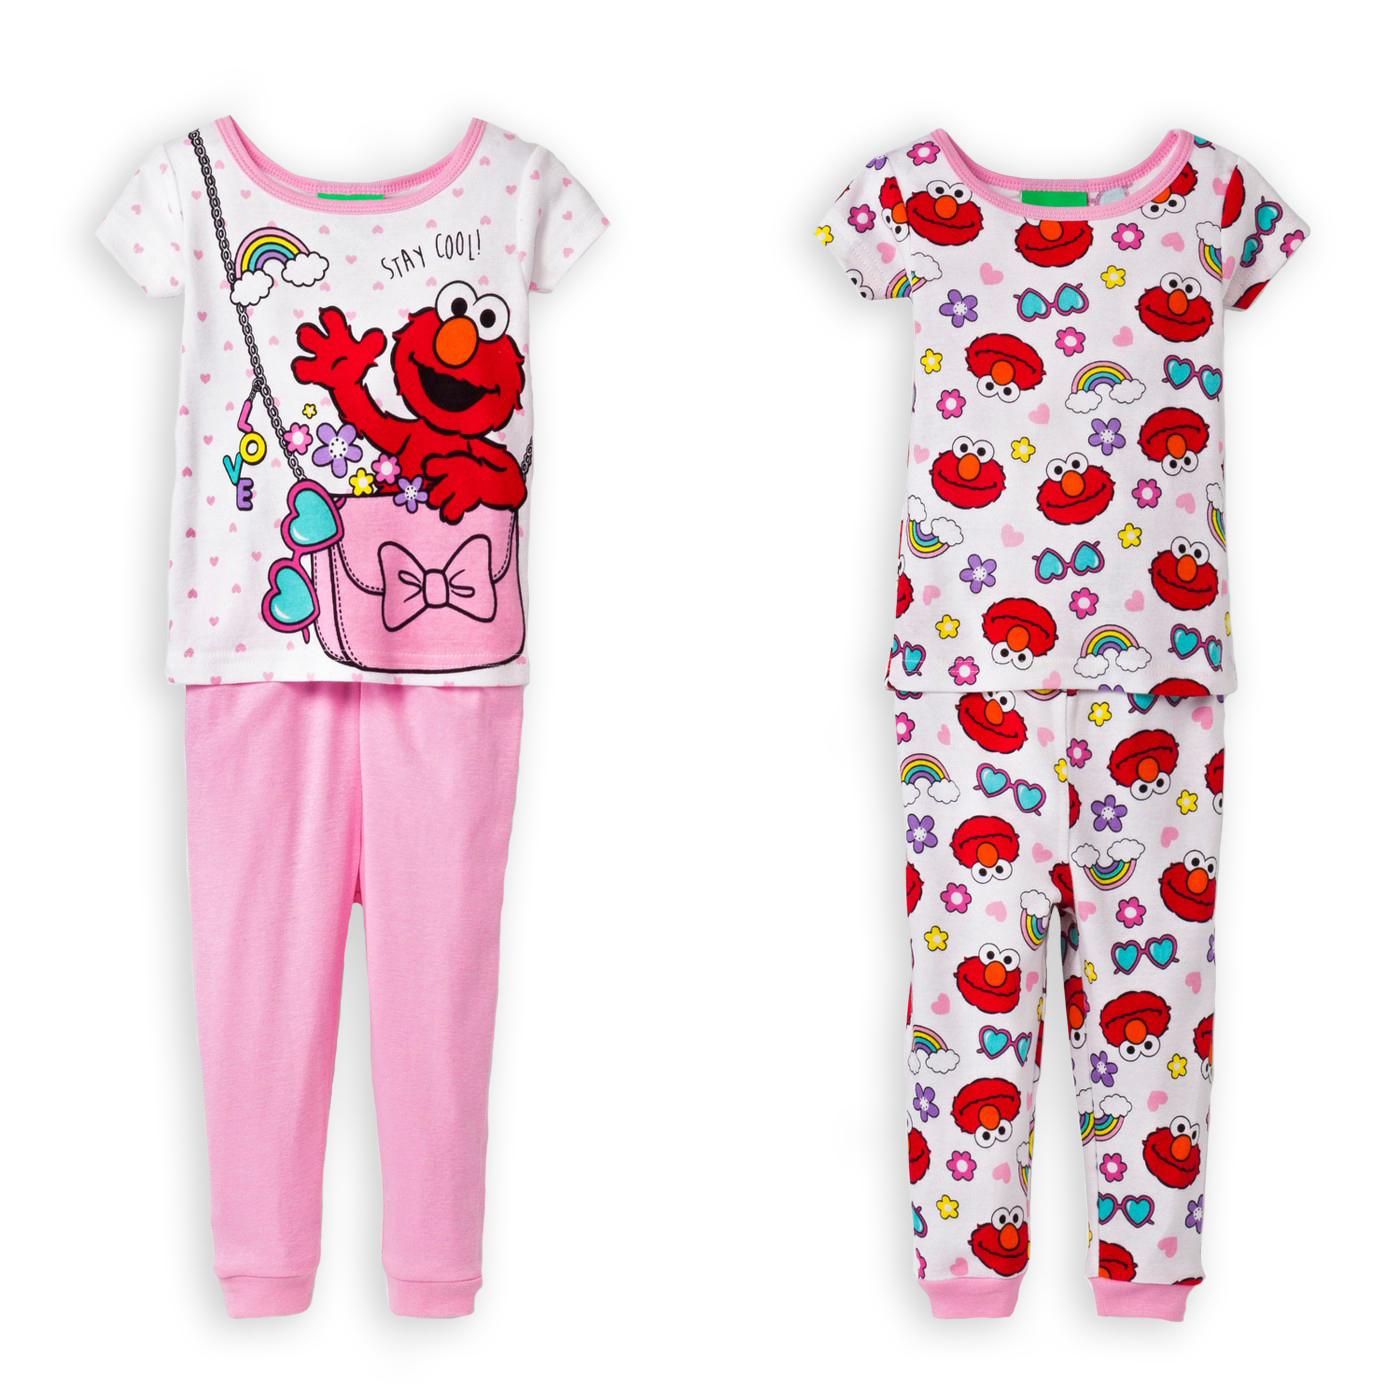 4ddf565699 Sesame Street Elmo Pink Purse Girls Toddler 4-Piece Cotton Pajama ...